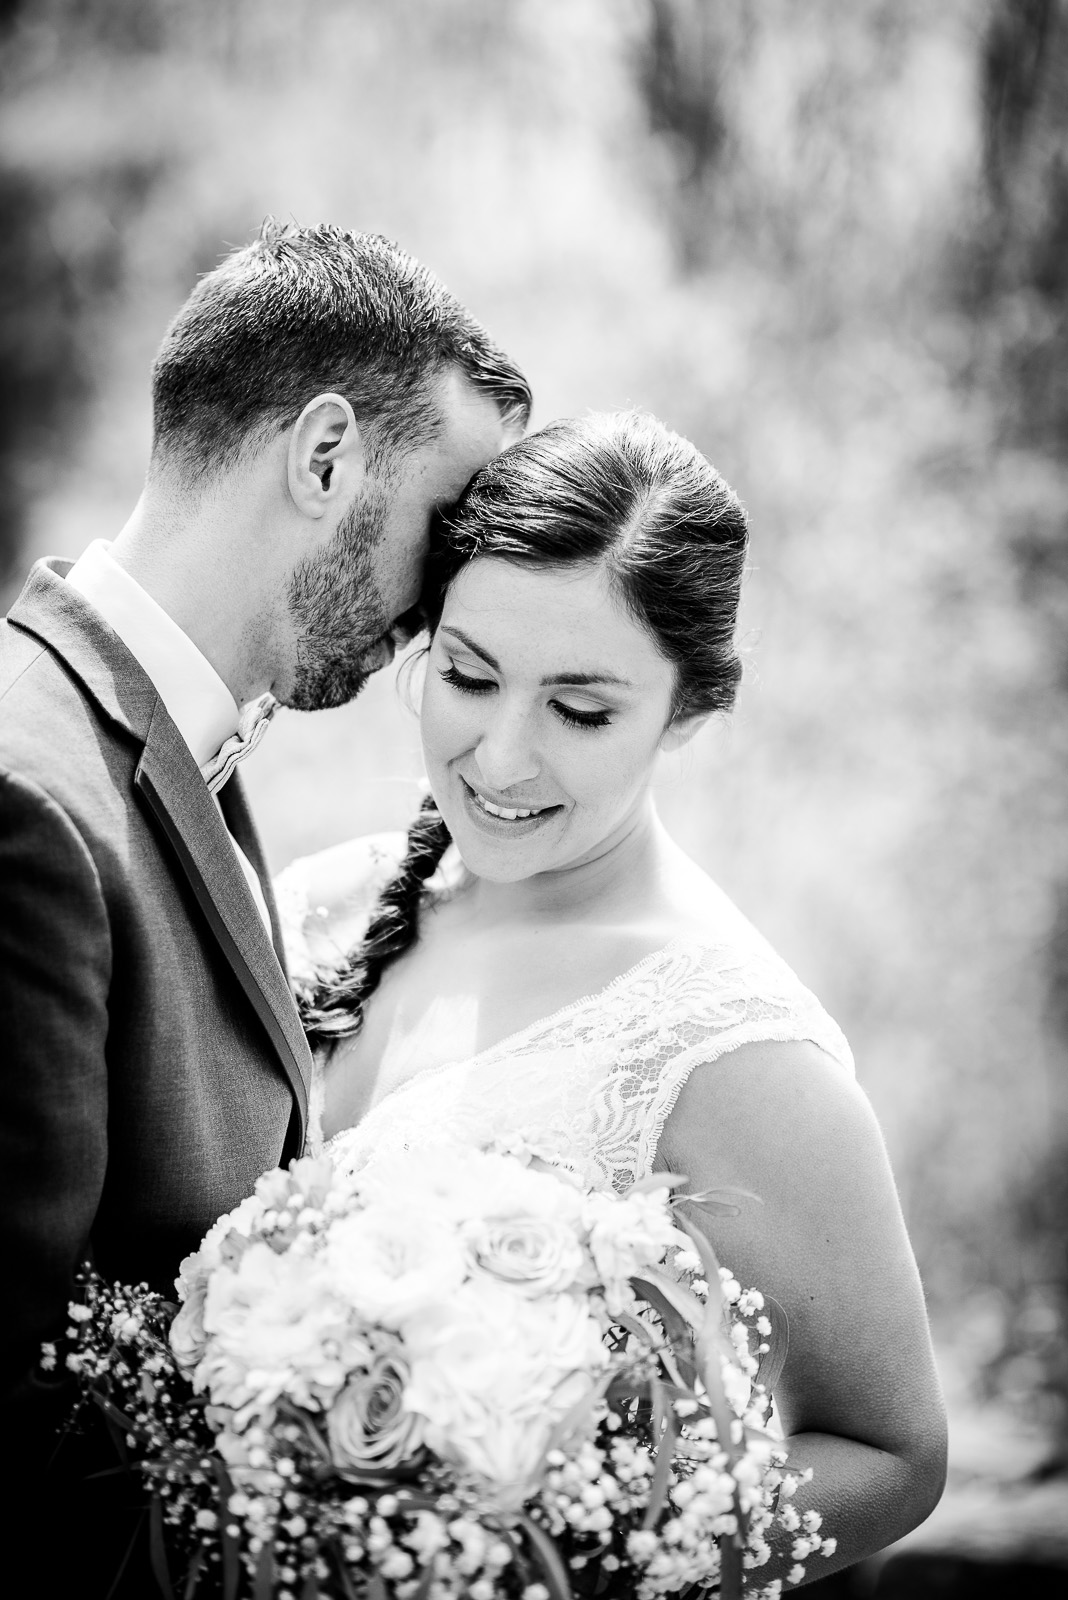 Eric_and_Christy_Photography_Blog_Katie_Travis_Wedding-22